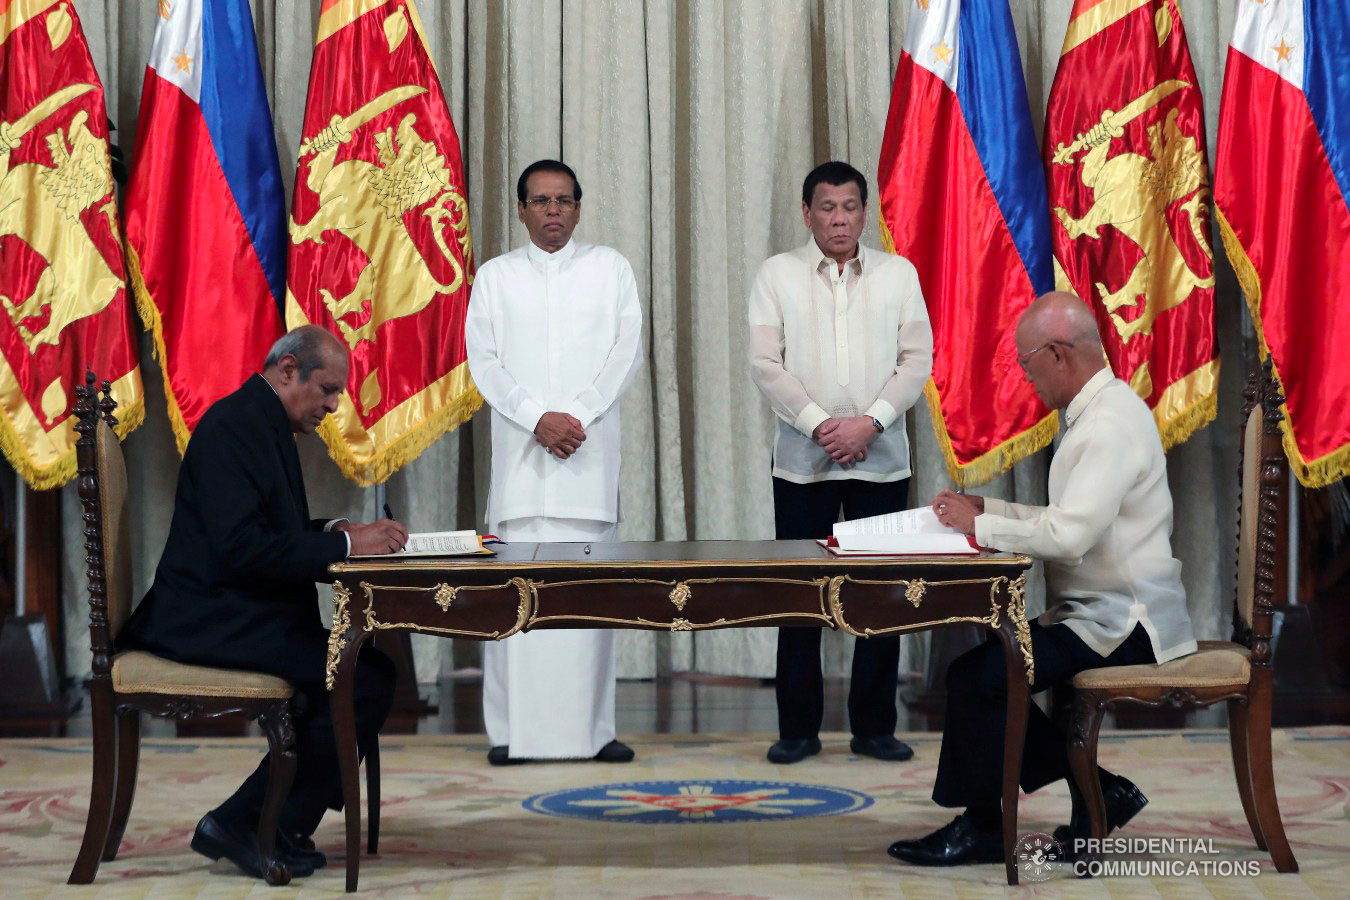 President Rodrigo Roa Duterte and Democratic Socialist Republic of Sri Lanka President Maithripala Sirisena witness the signing of agreements between Sri Lankan Minister of Foreign Affairs Tilak Marapana and Defense Secretary Delfin Lorenzana at the Malacañan Palace on January 16, 2019. The agreement is a Memorandum of Understanding between the Department of National Defense of the Republic of the Philippines and the Ministry of Defence of the Democratic Socialist Republic of Sri Lanka concerning Defense and Military Education as well as Training and Exchanges of Defense and Military Delegations. ACE MORANDANTE/PRESIDENTIAL PHOTO